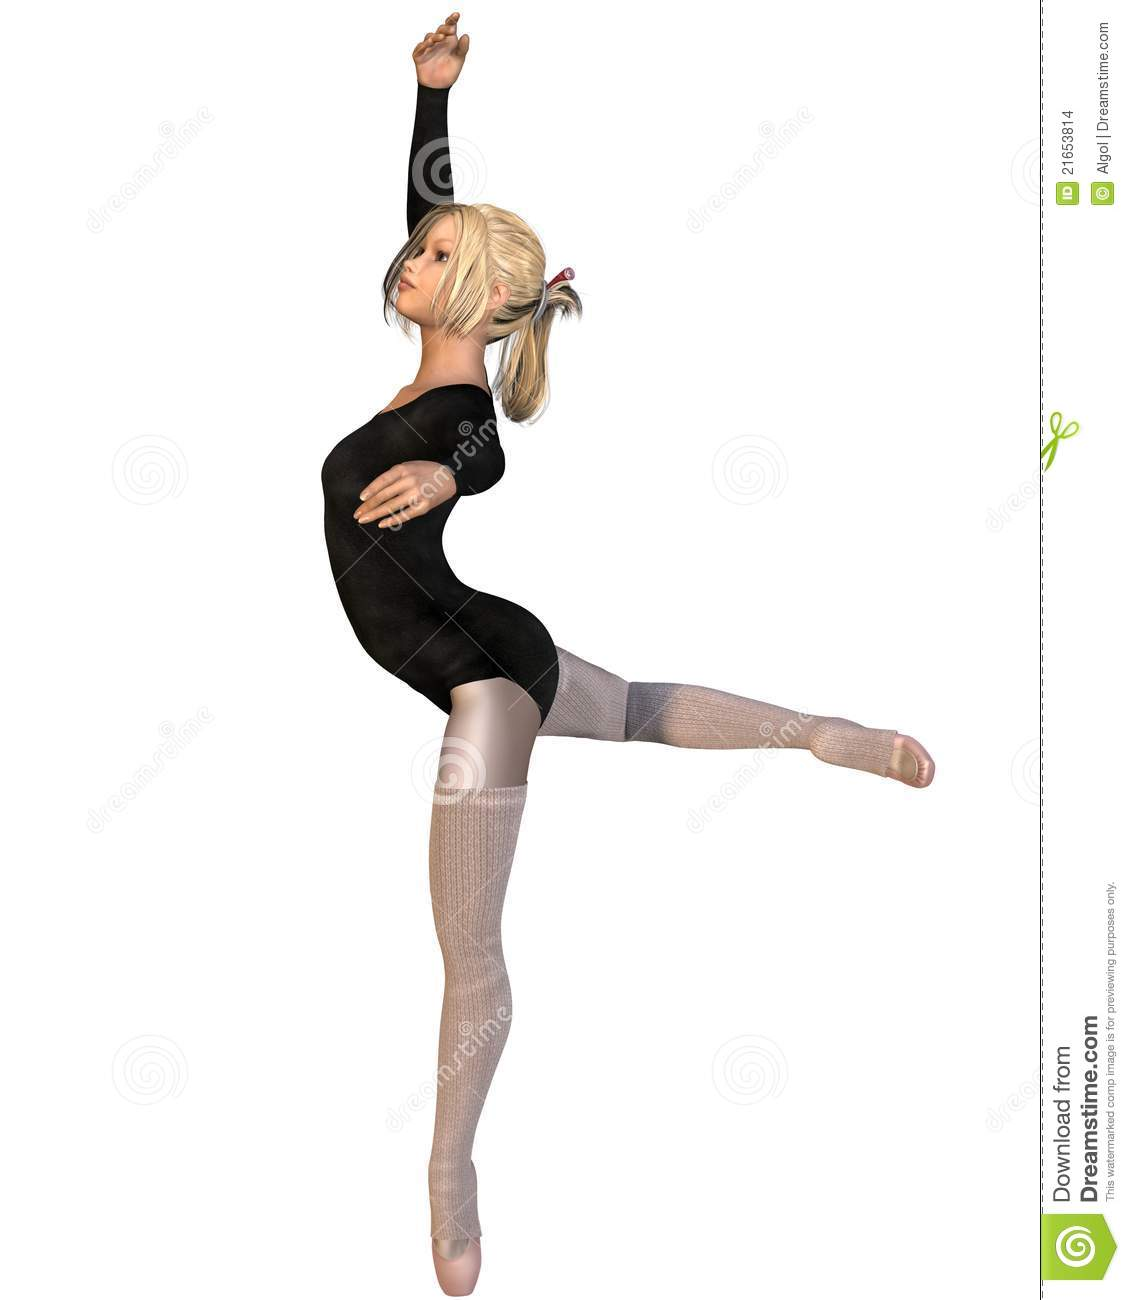 Ballet Practice - Attitude Pose Stock Images - Image: 21653814